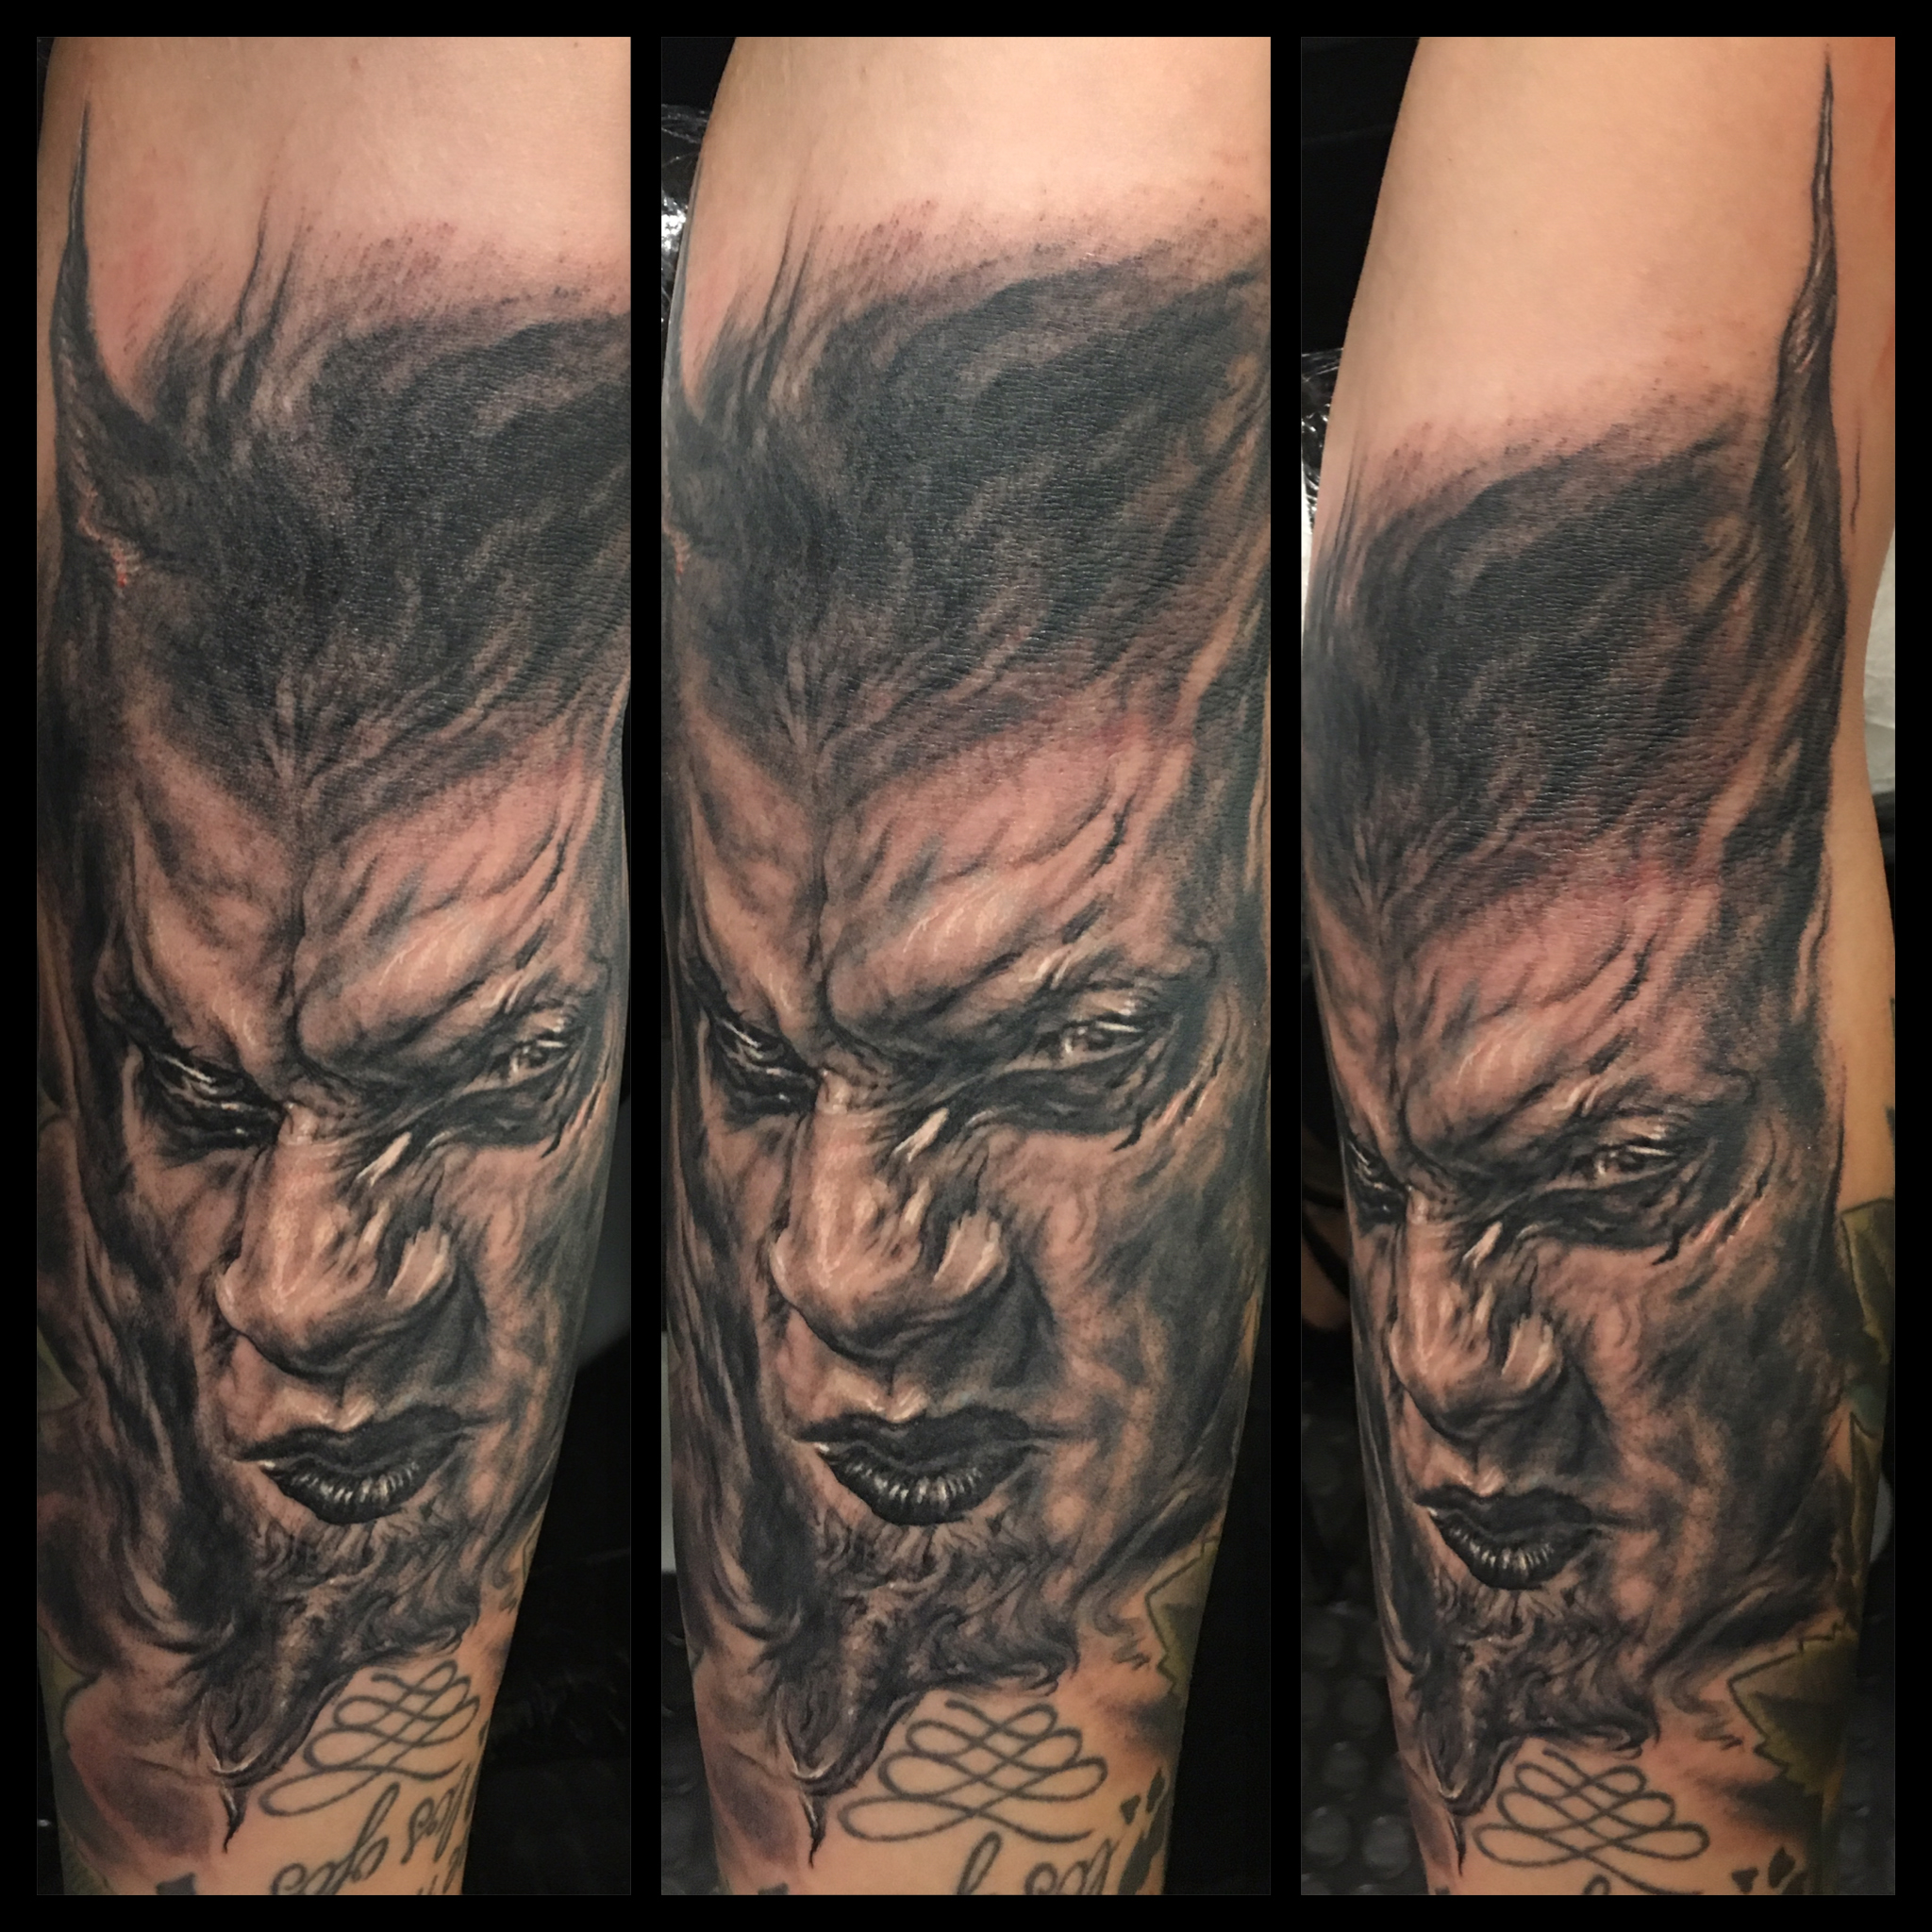 Black and Grey Demon Tattoo, tattooed at Barcelona Tattoo Expo (fresh)